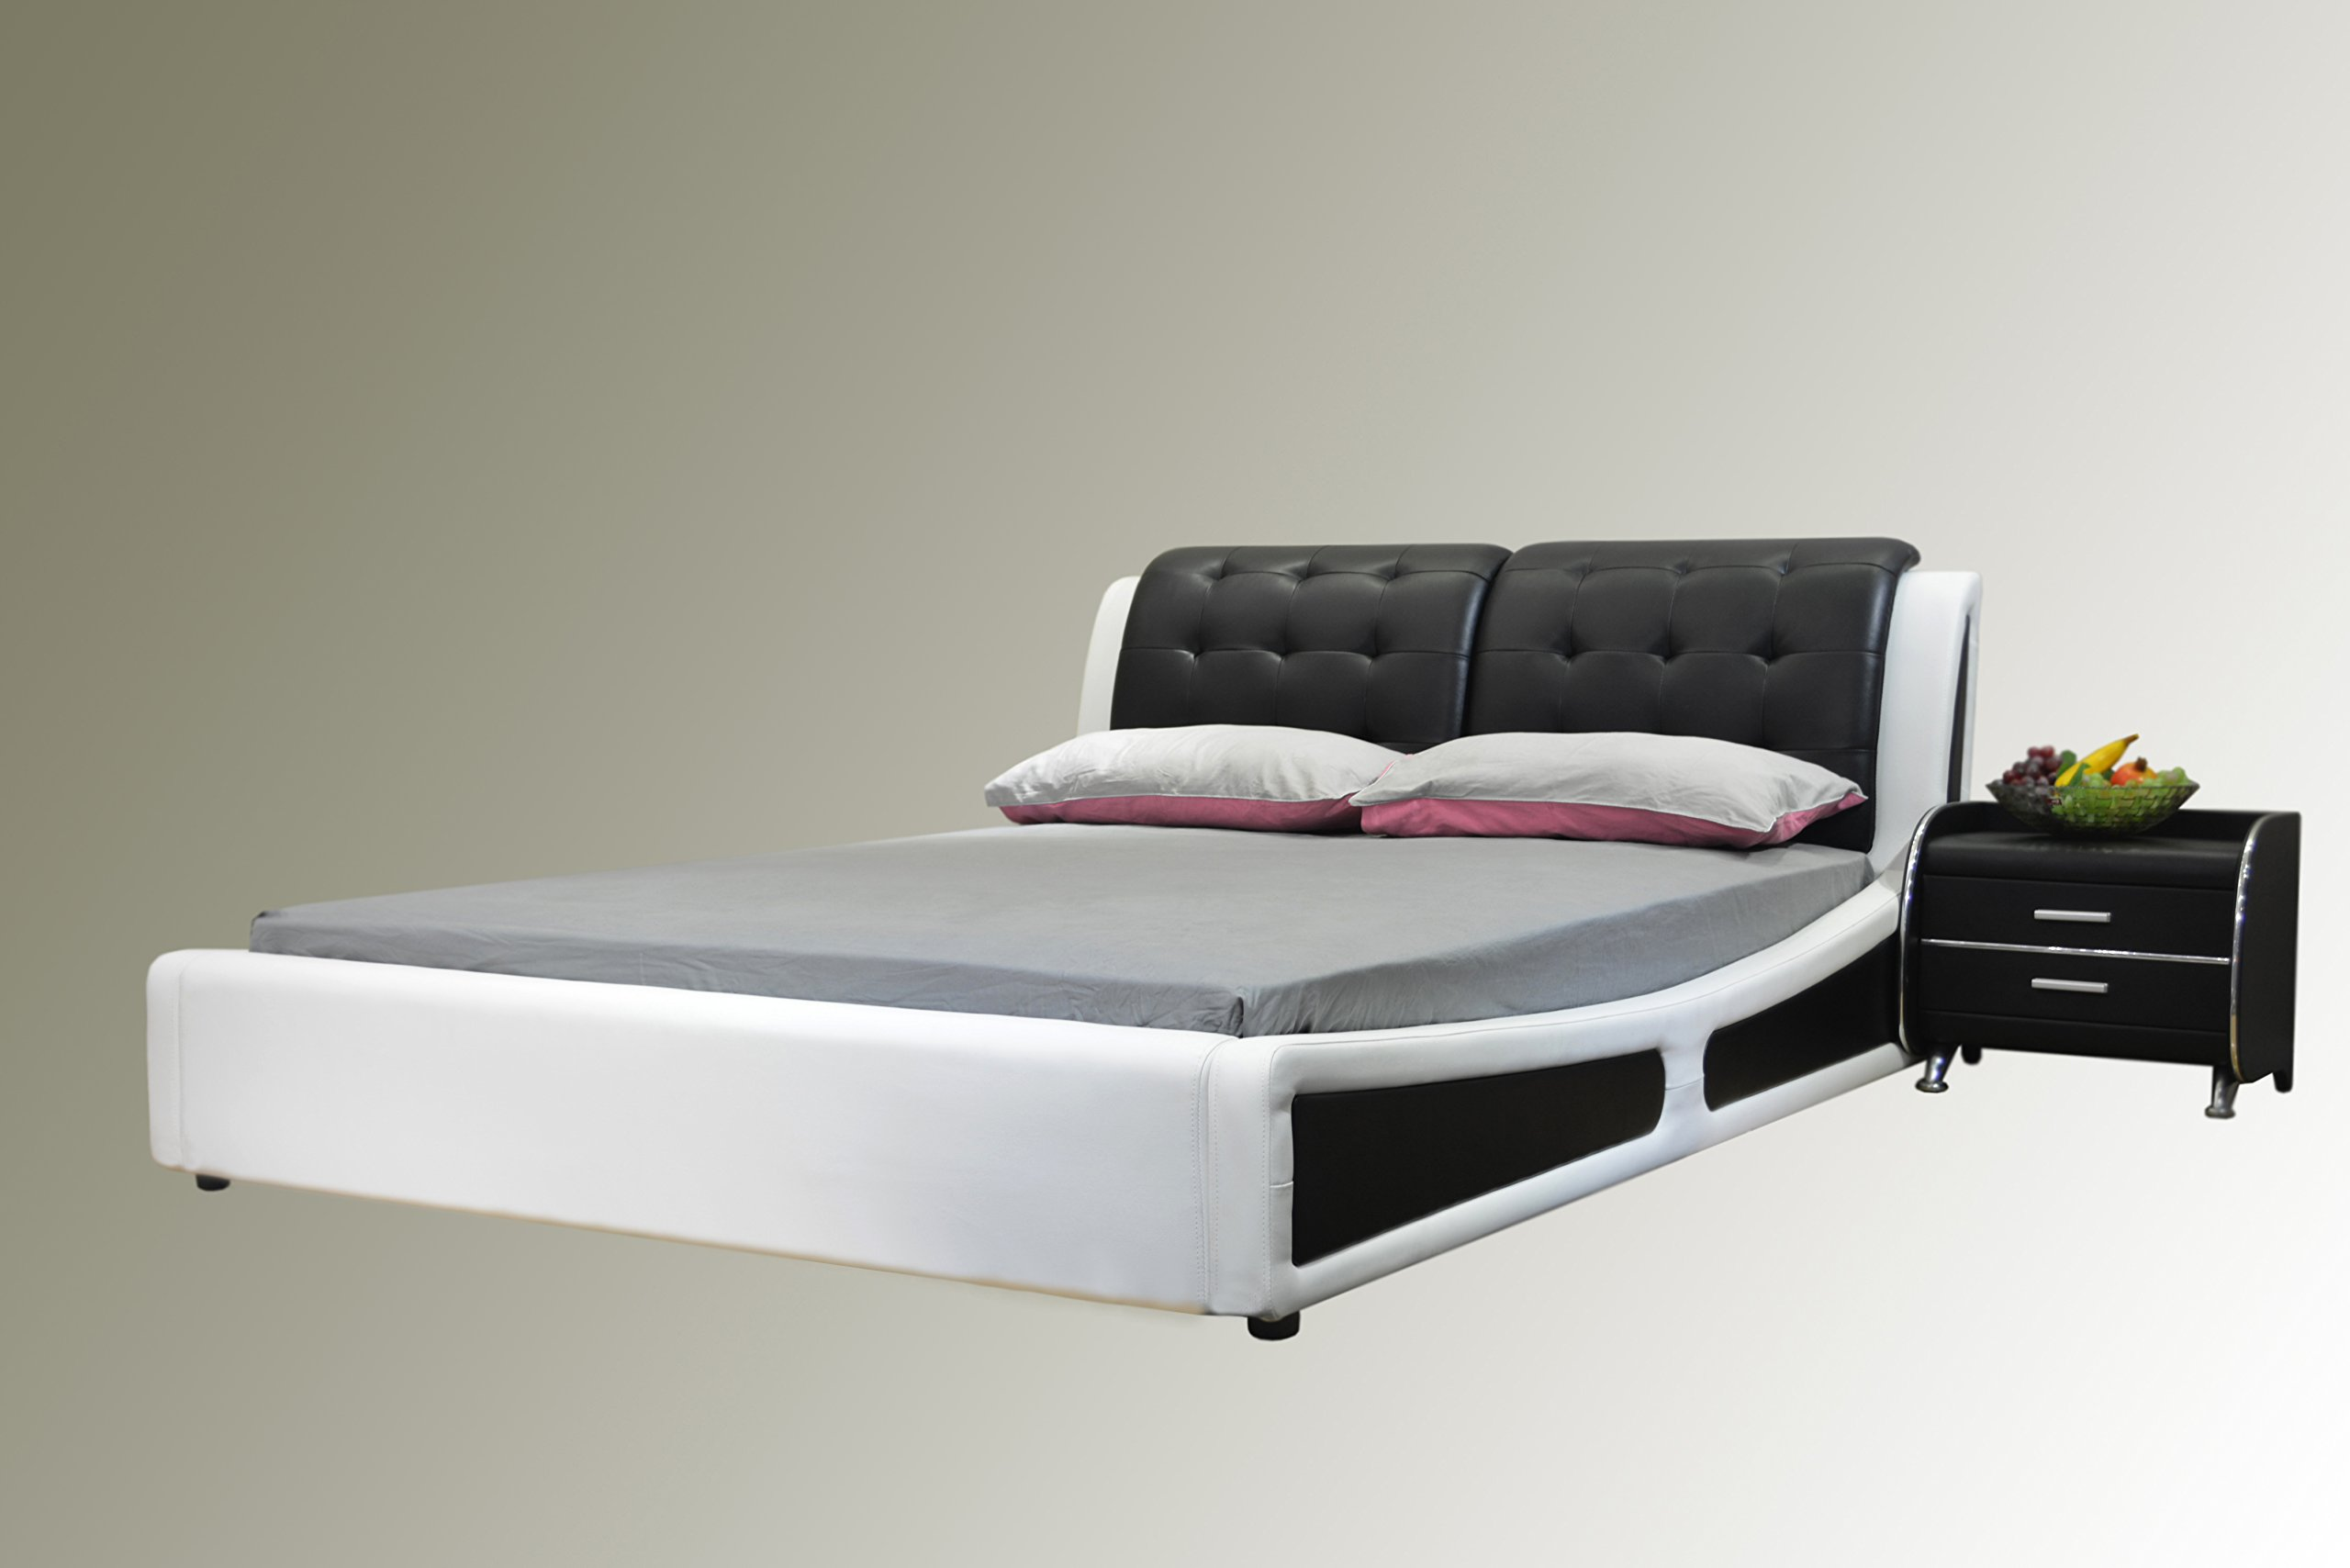 Greatime  Platform Bed, Eastern King Two Tone, Black/White